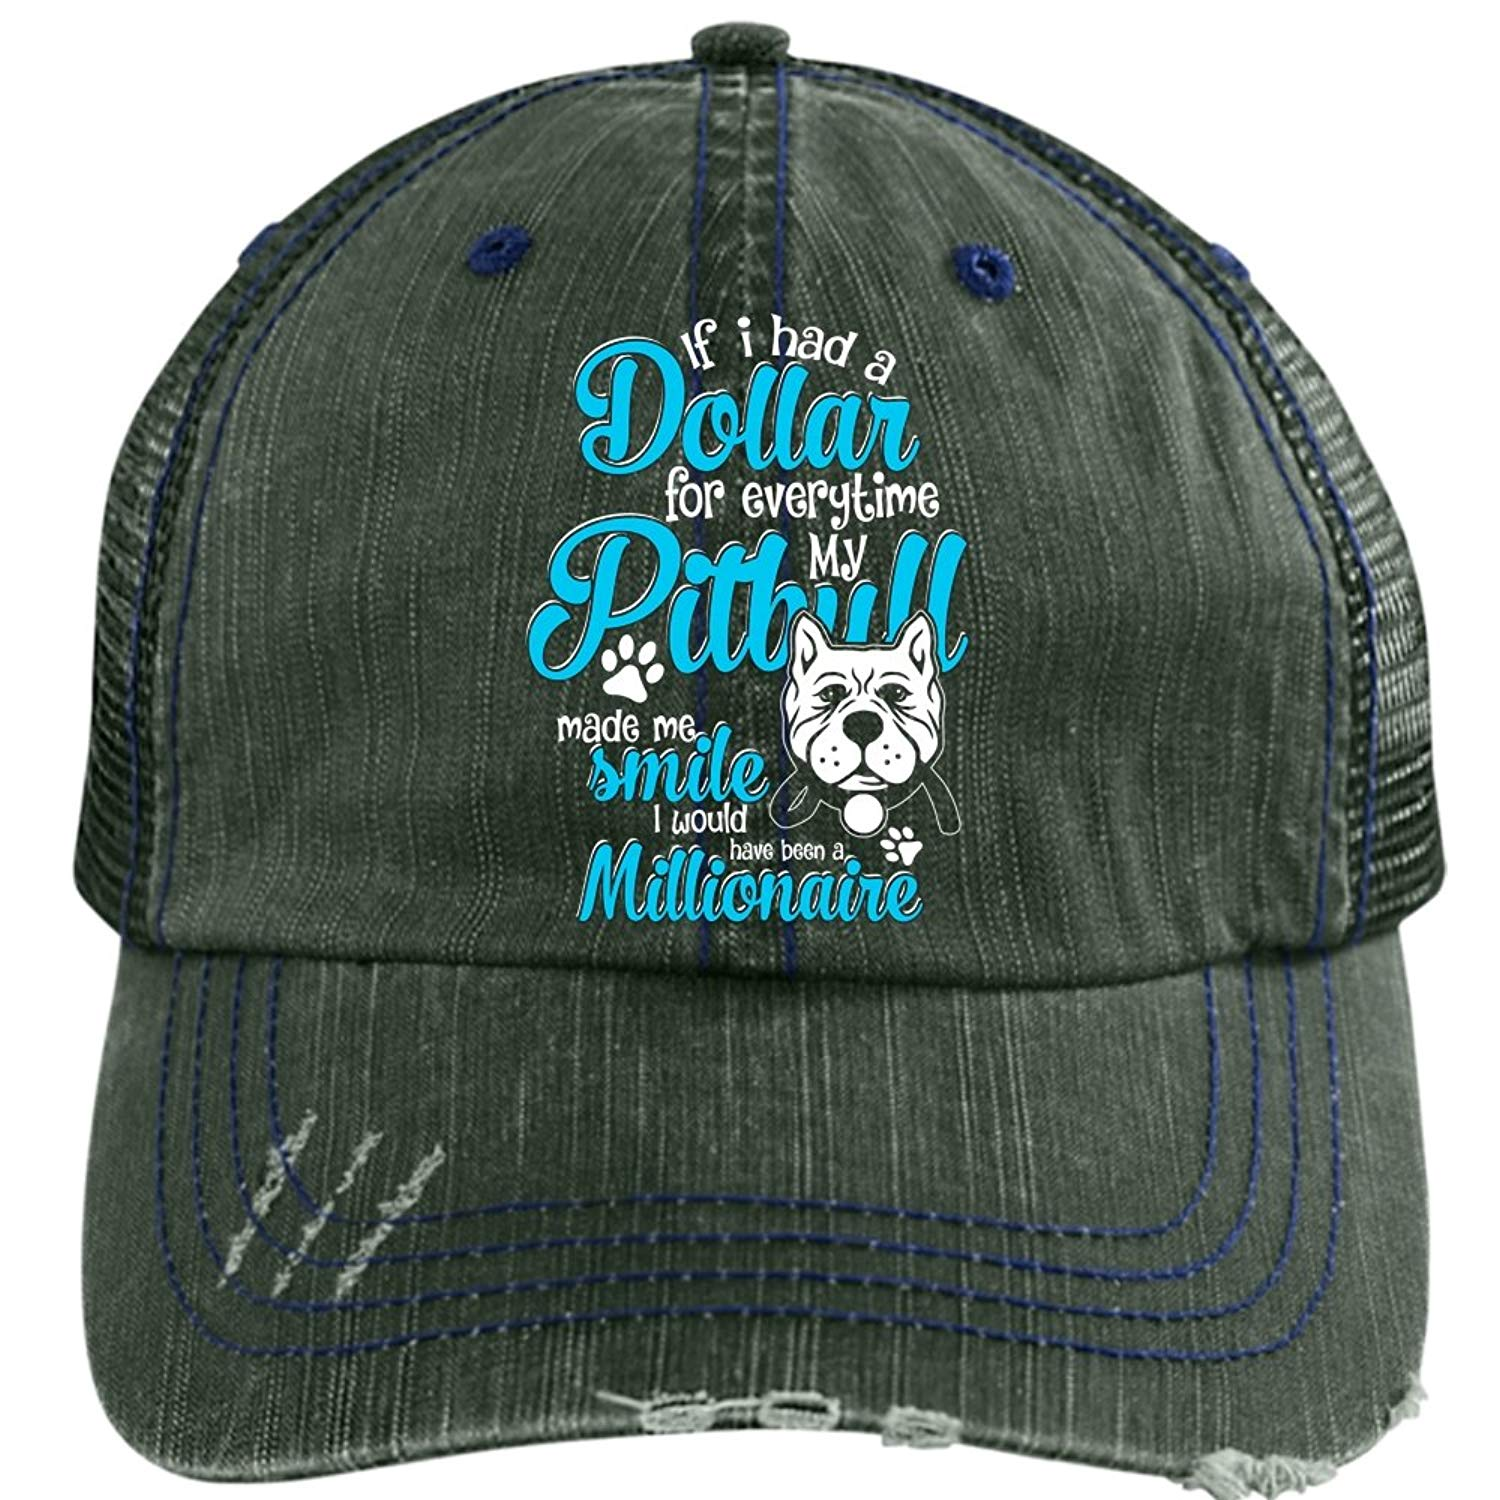 64ec066e Get Quotations · Everytime My Pit Bull Made Me Smile Hat, I Love My Pit  Bull Trucker Cap